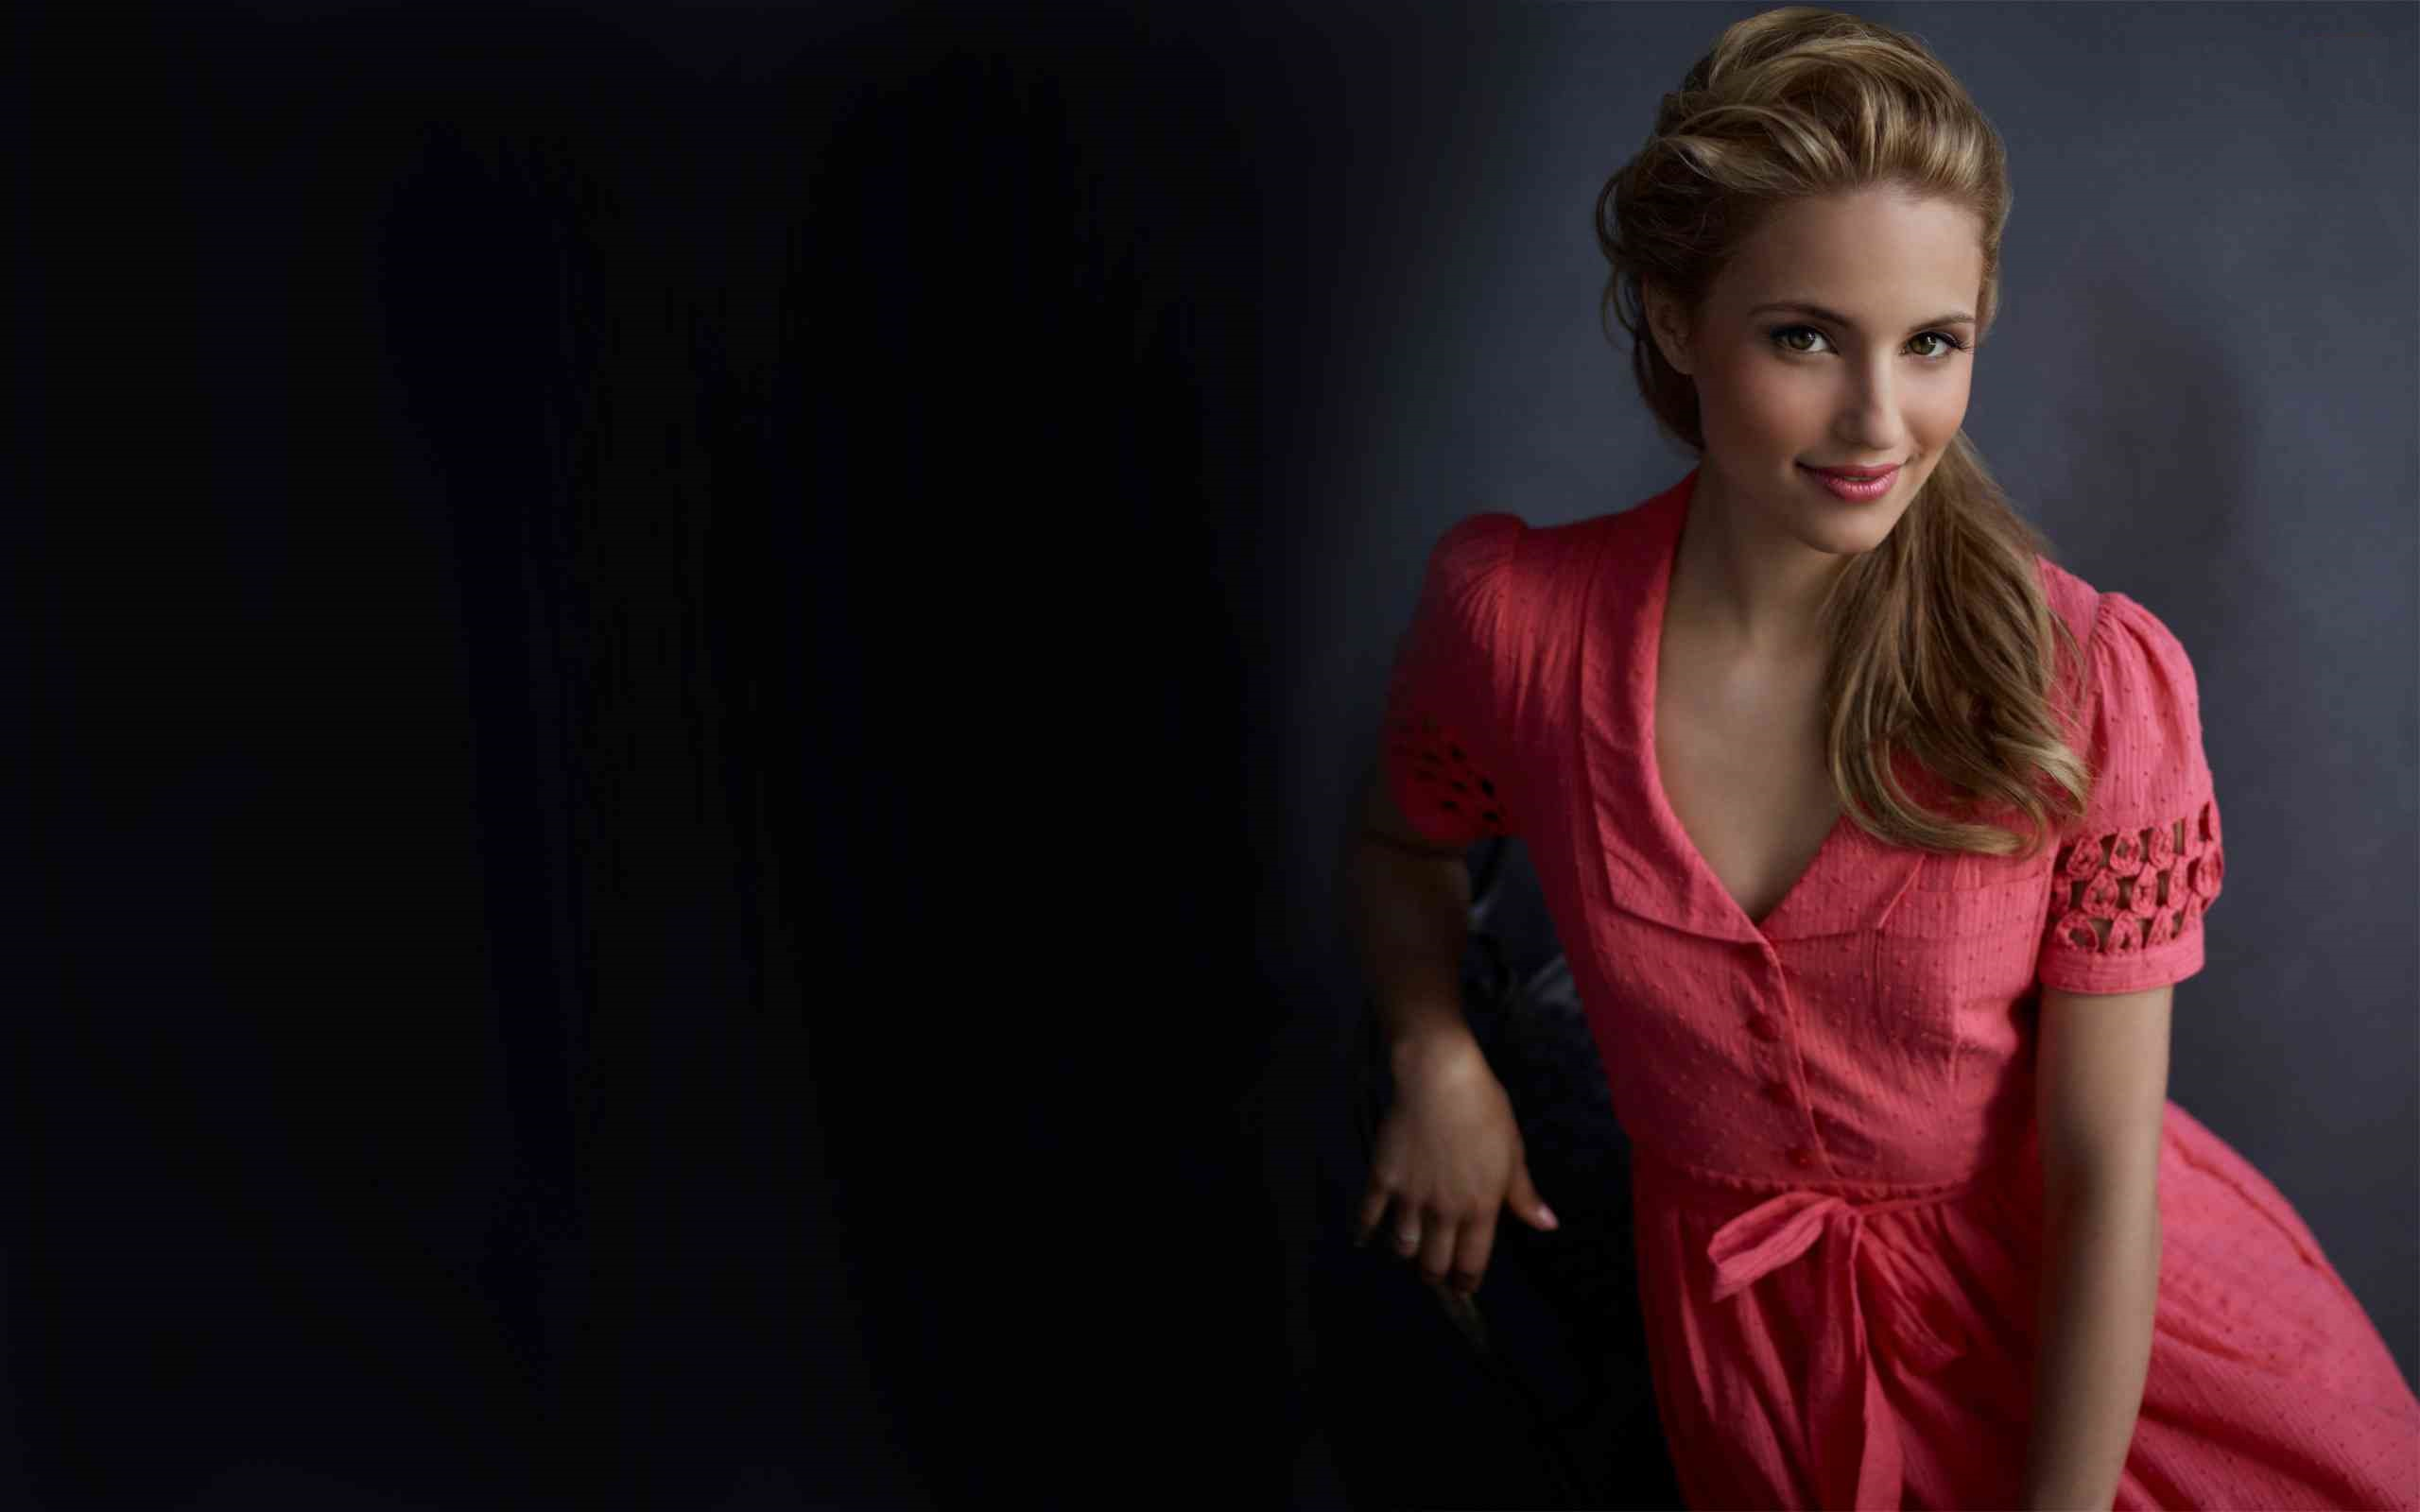 dianna agron hd wallpaper desktop